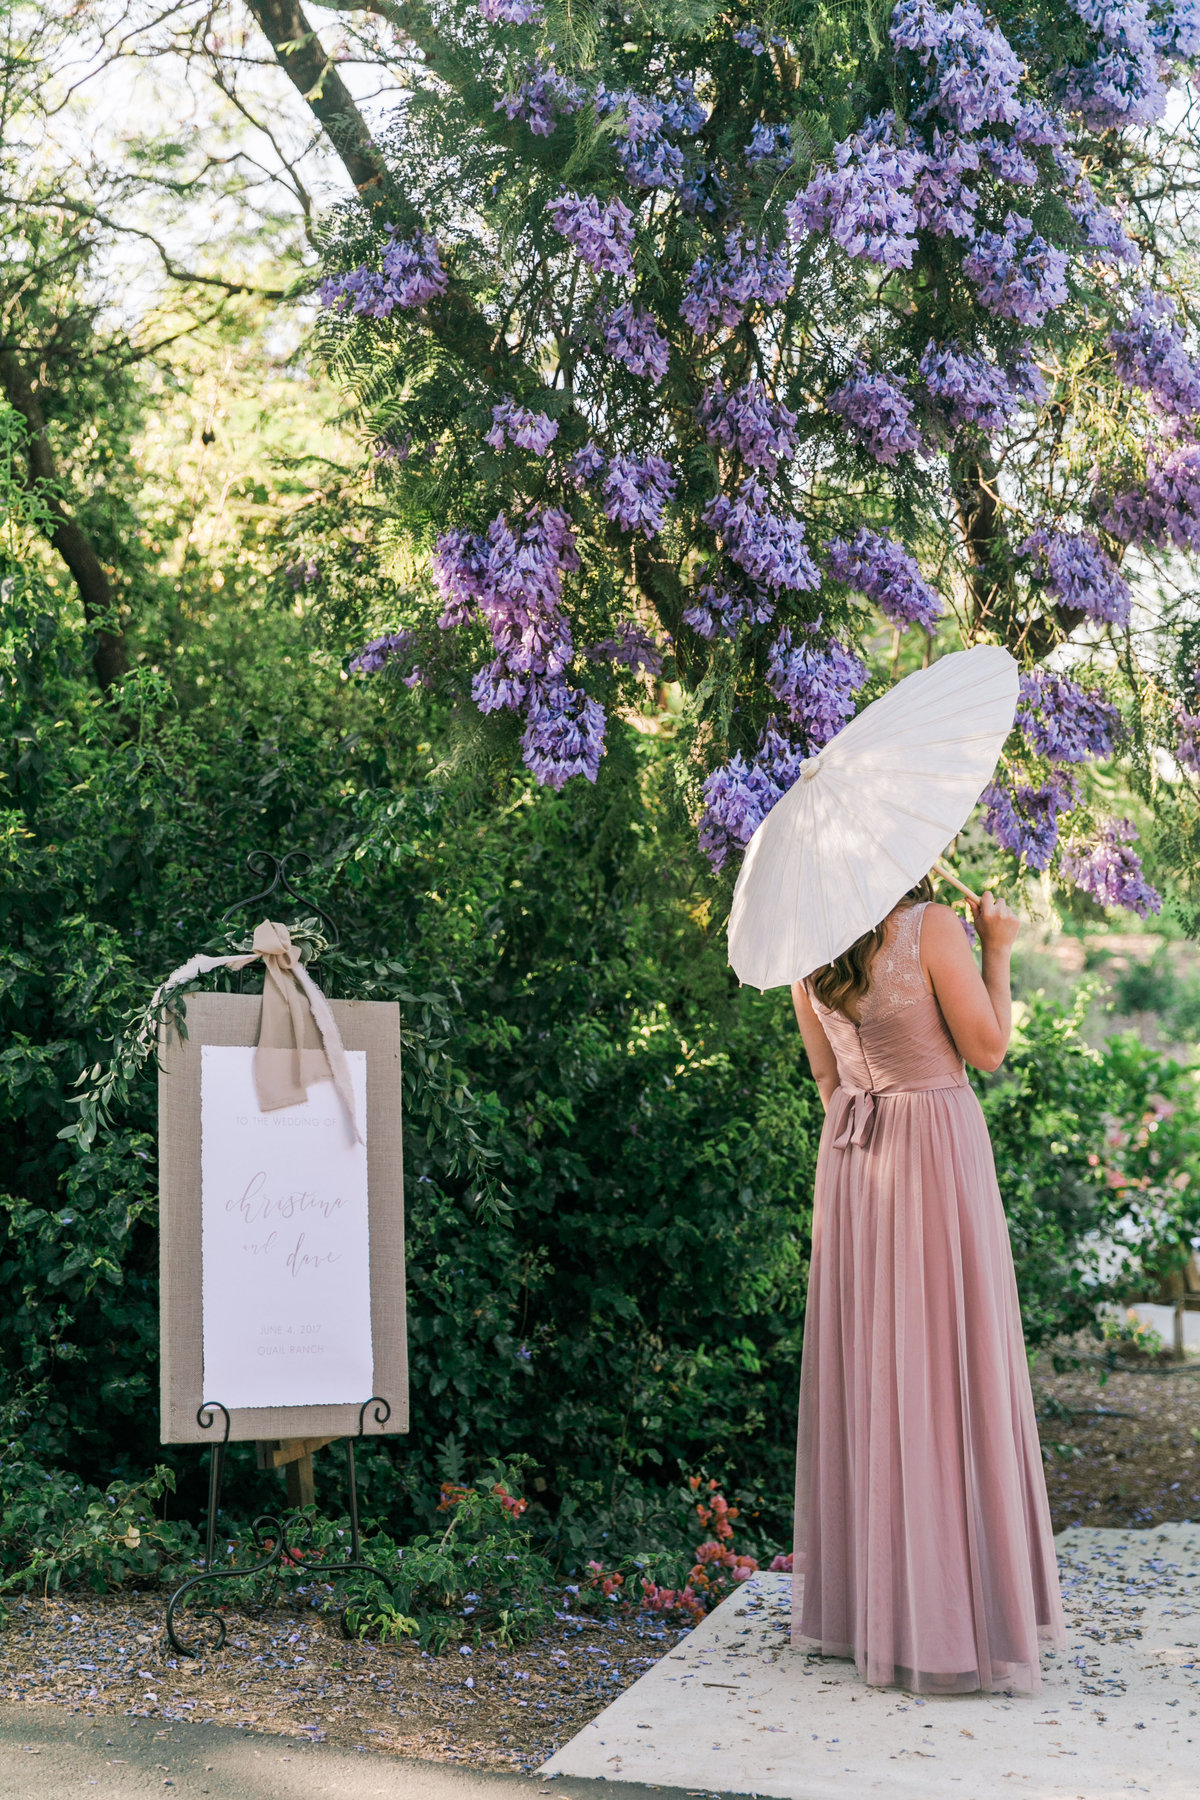 Quail_Ranch_Blush_California_Wedding_Valorie_Darling_Photography - 100 of 151